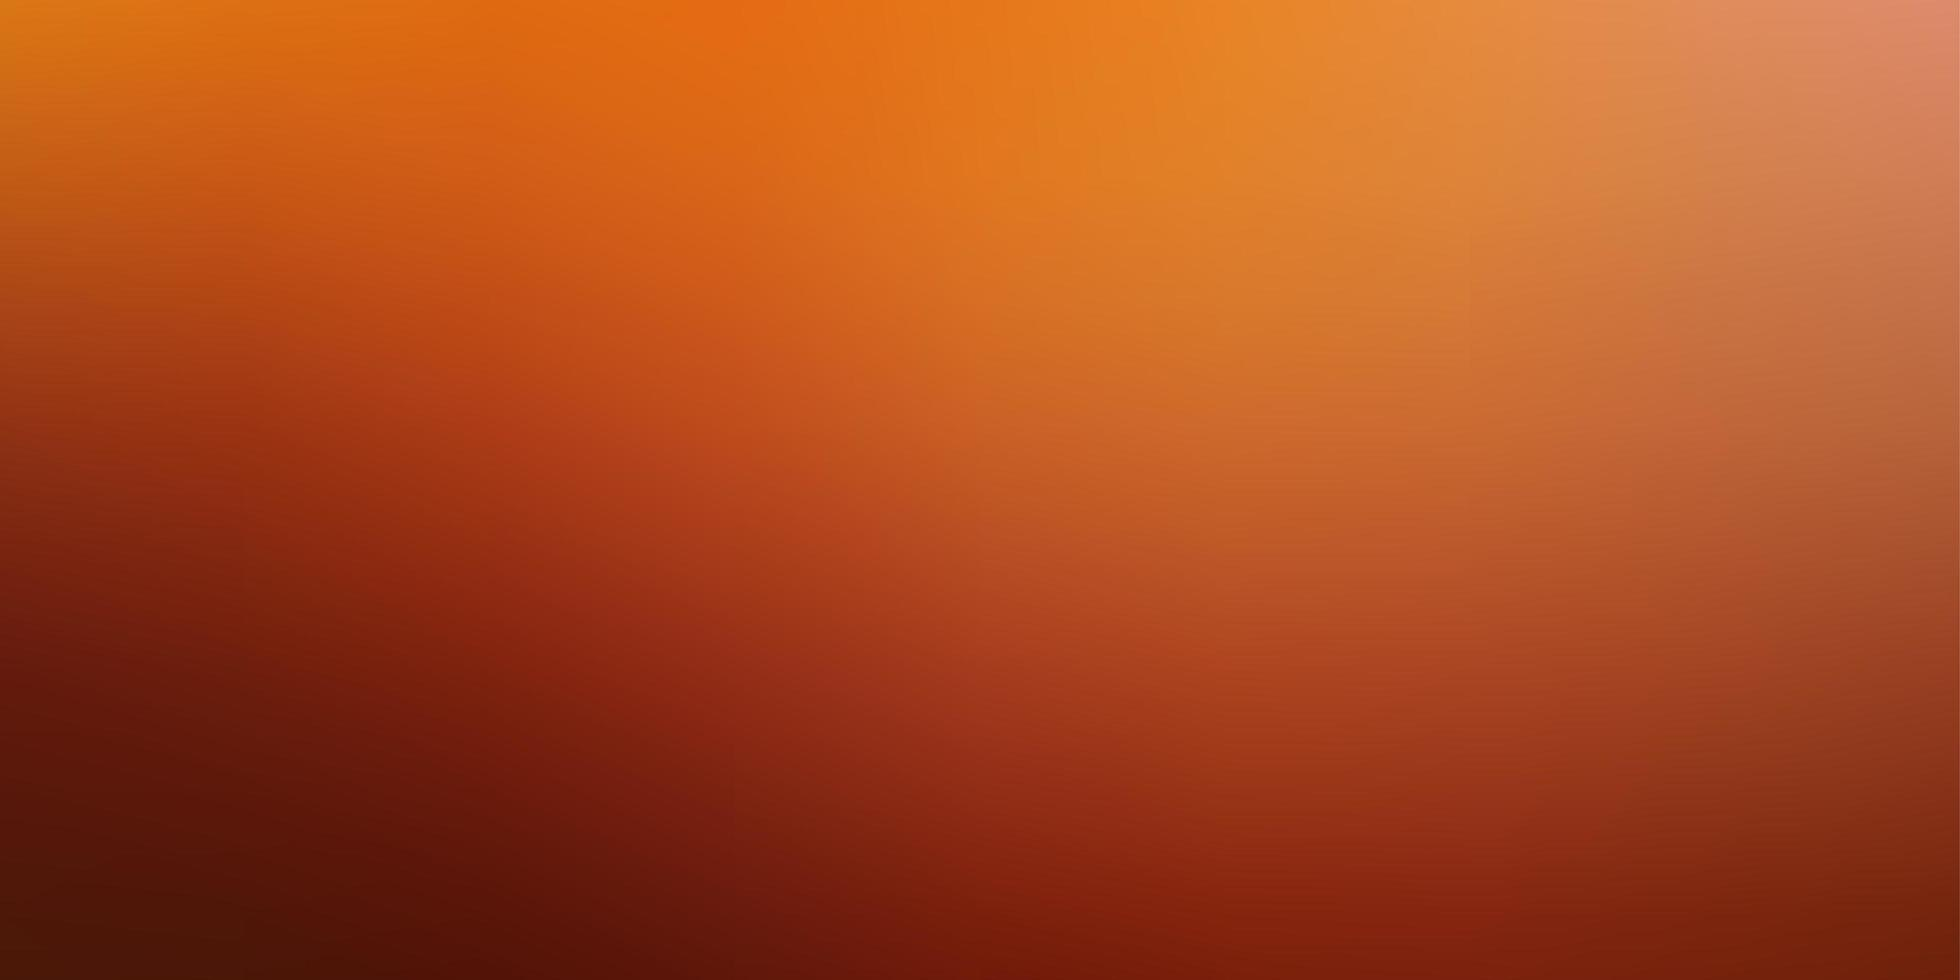 Light Orange vector abstract blurred background.